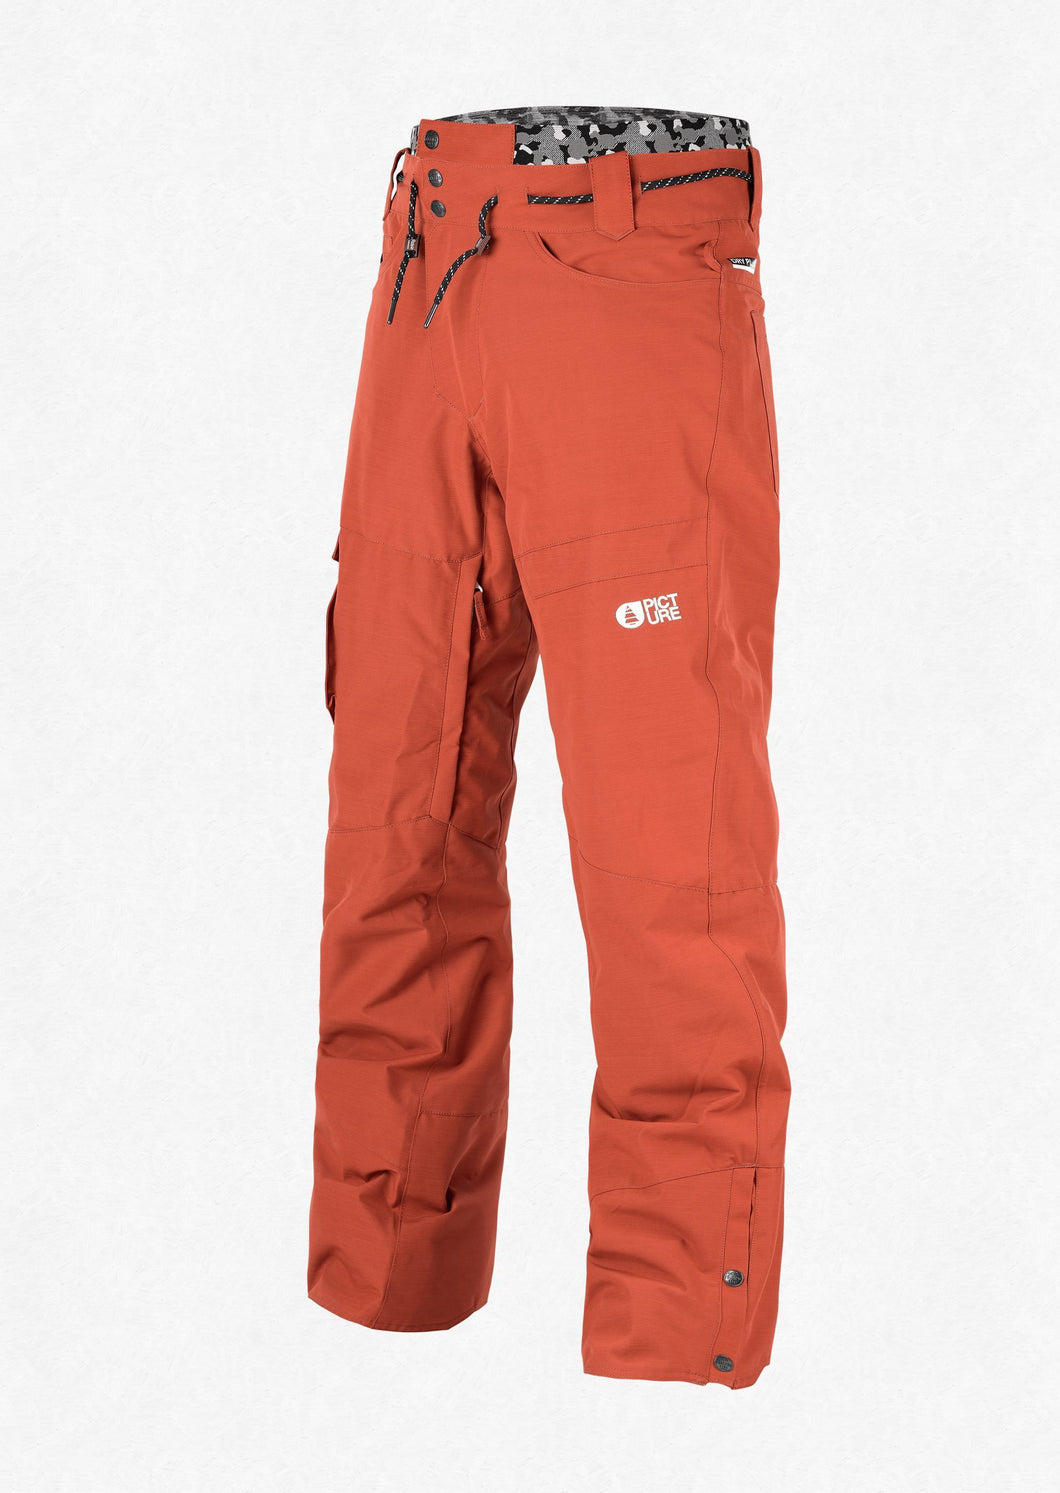 Picture Organic Clothing Men's Under Pant Ski and Snowboard Pant Brick Front